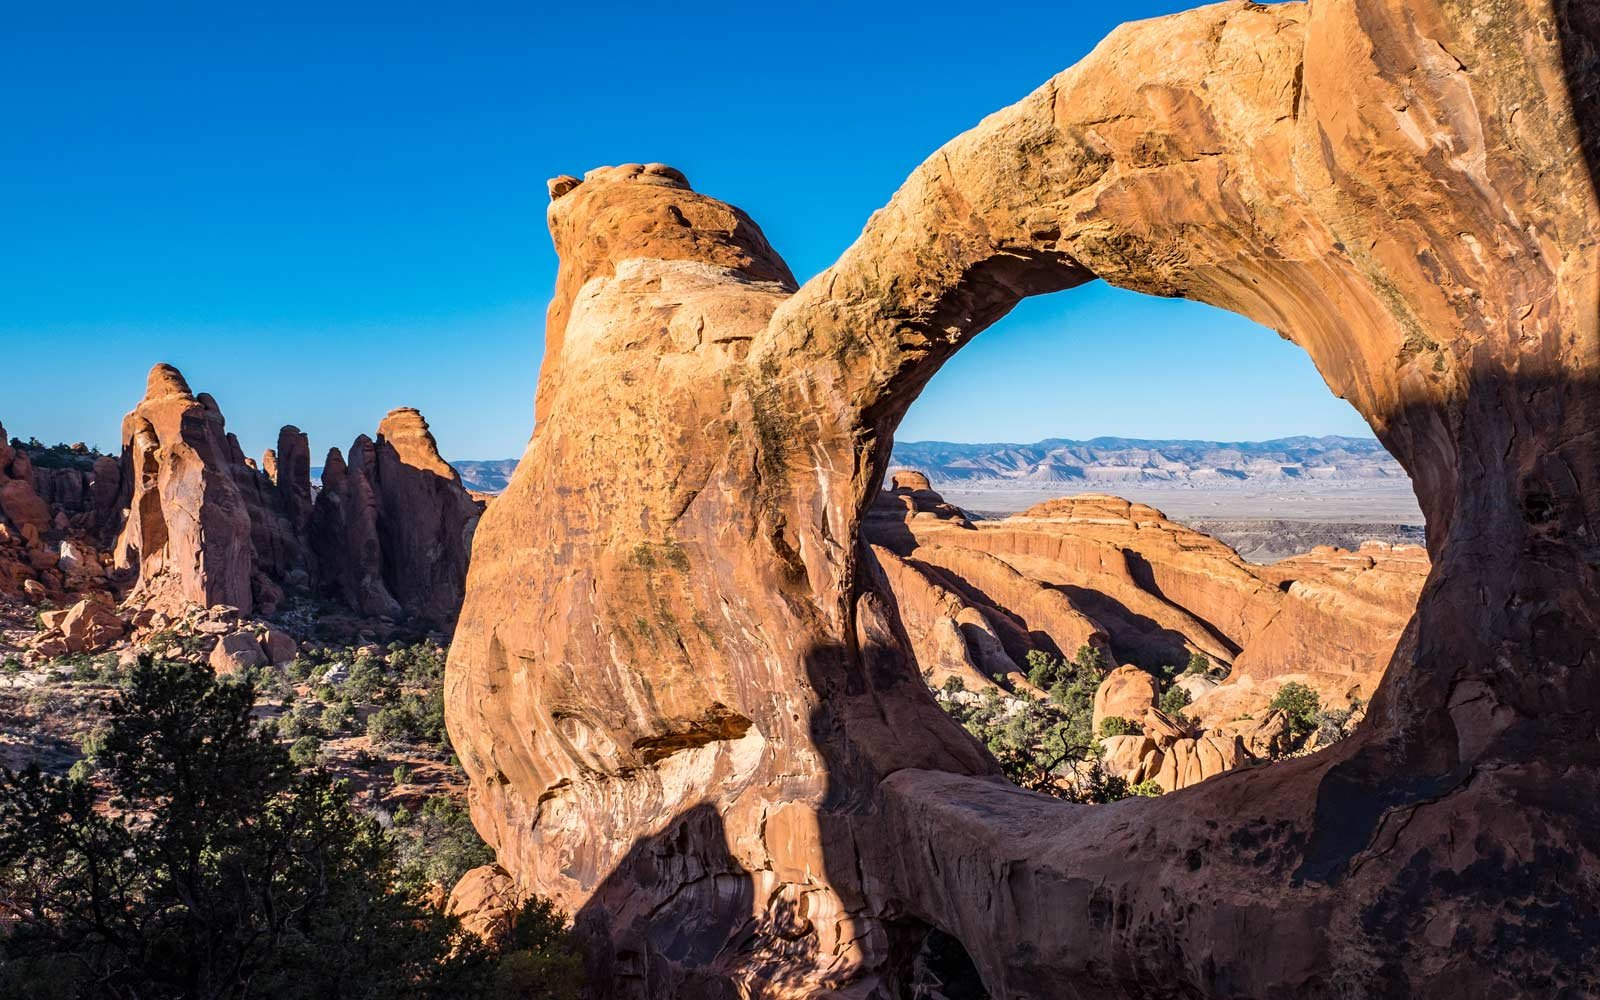 the best u.s. national parks, according to a couple that visited